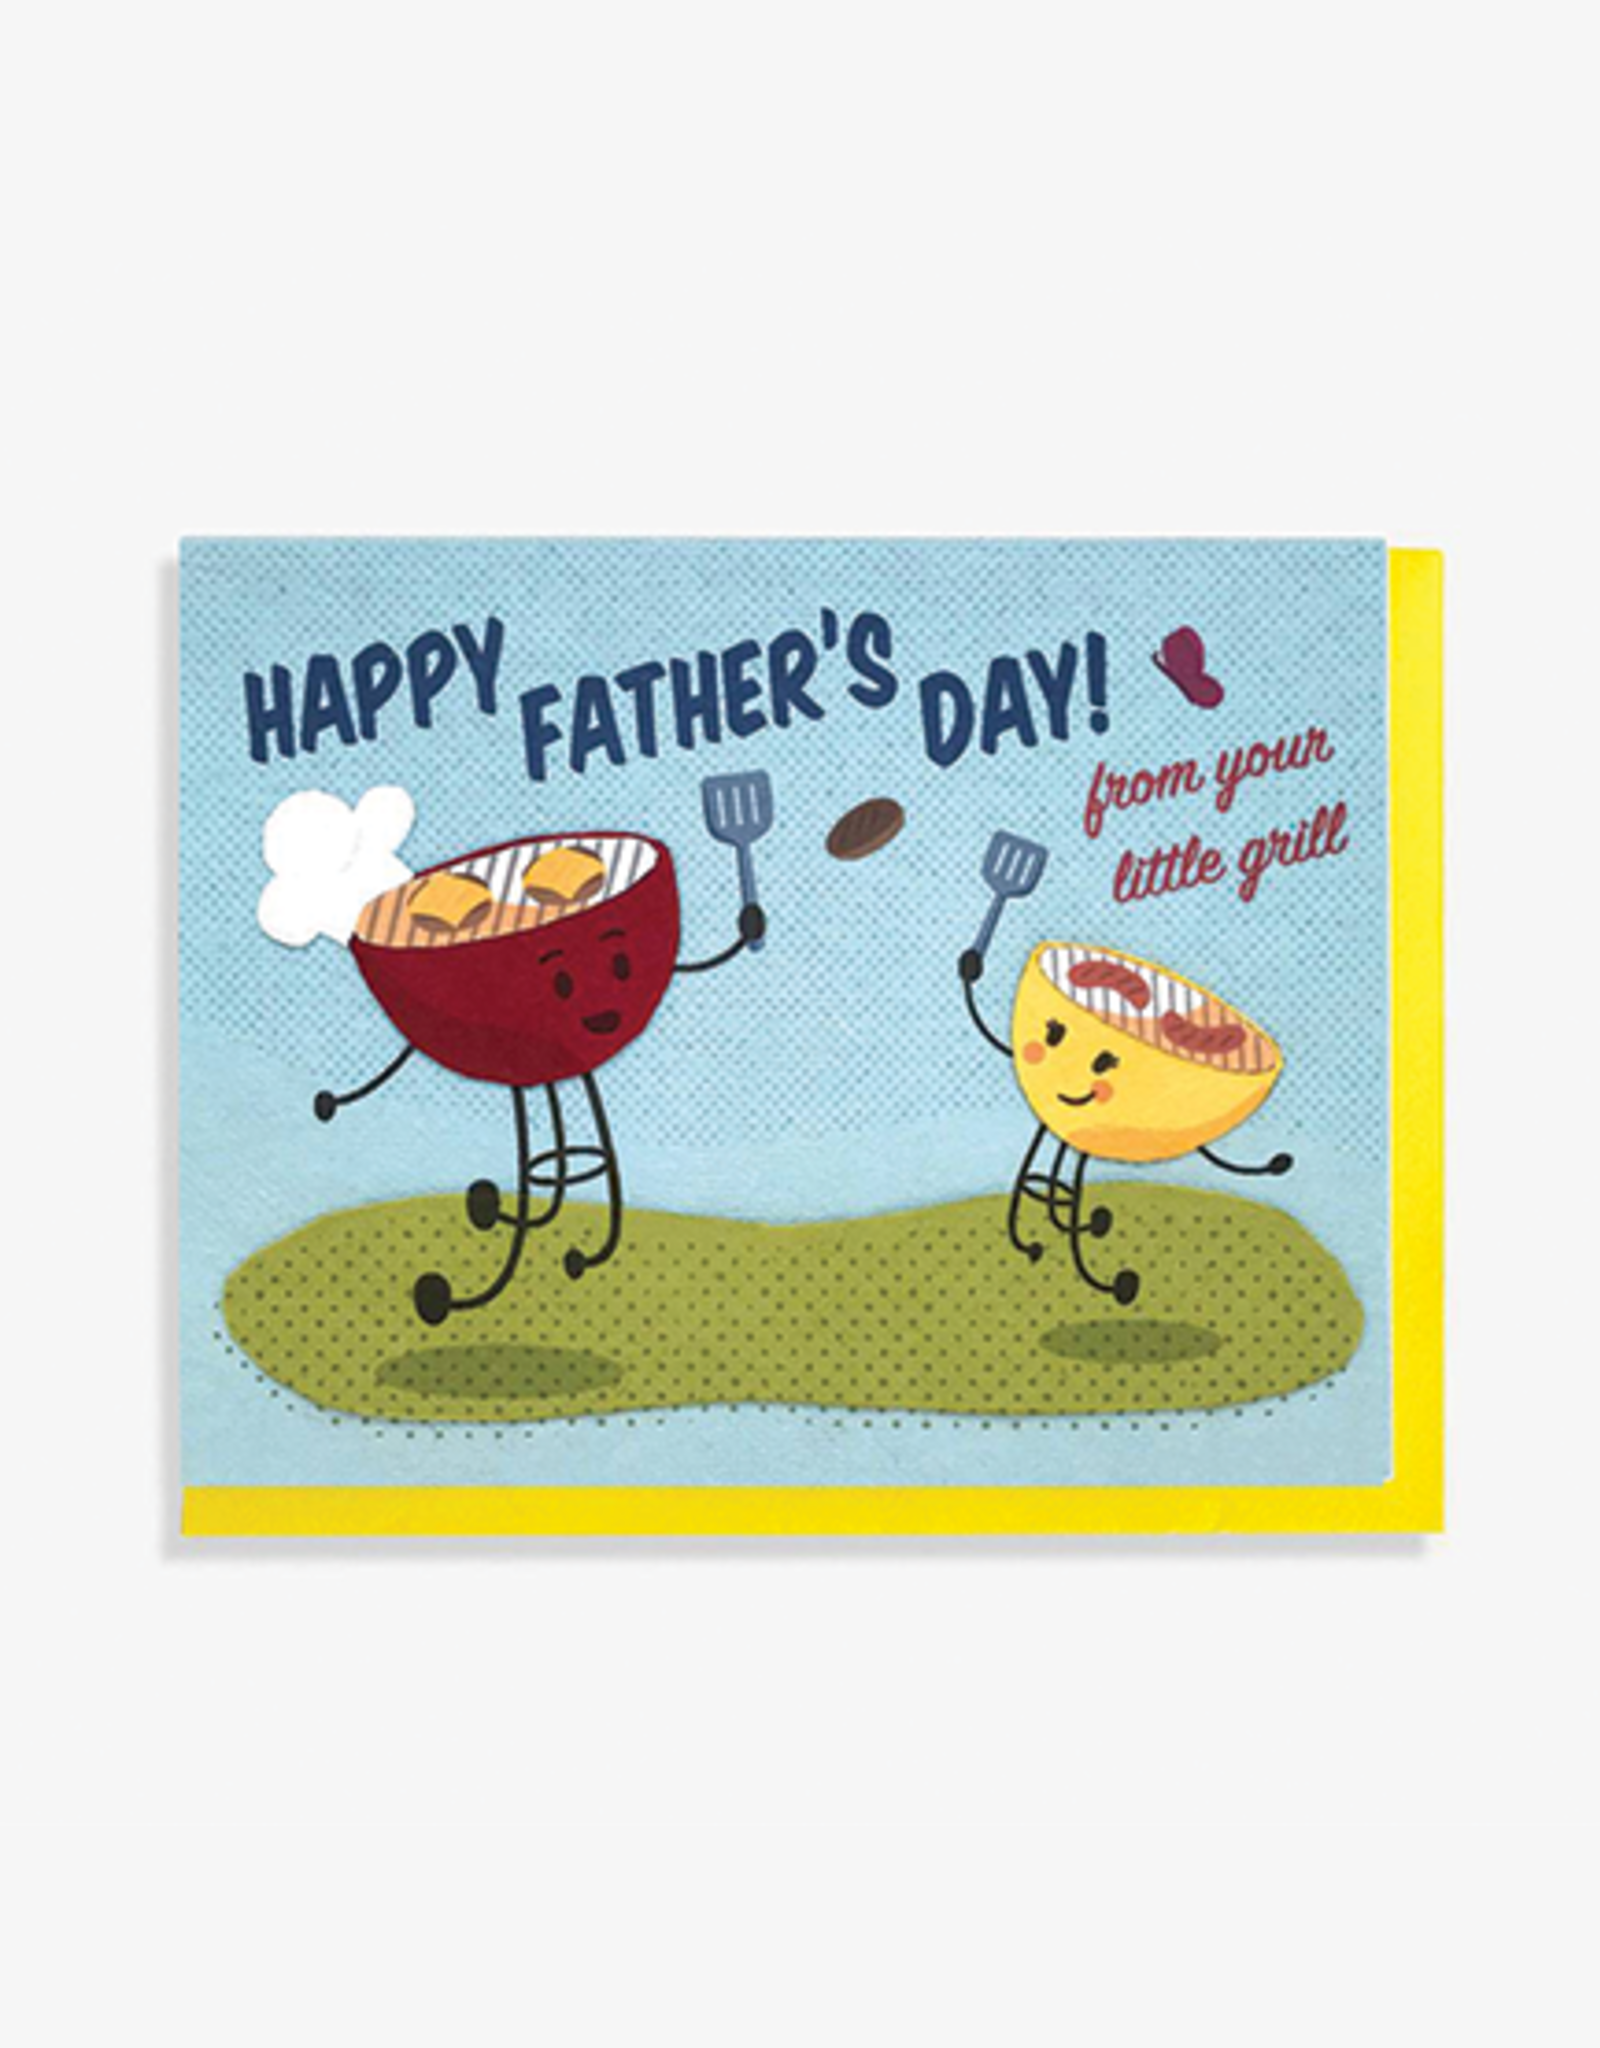 Happy Father's Day from your little grill!